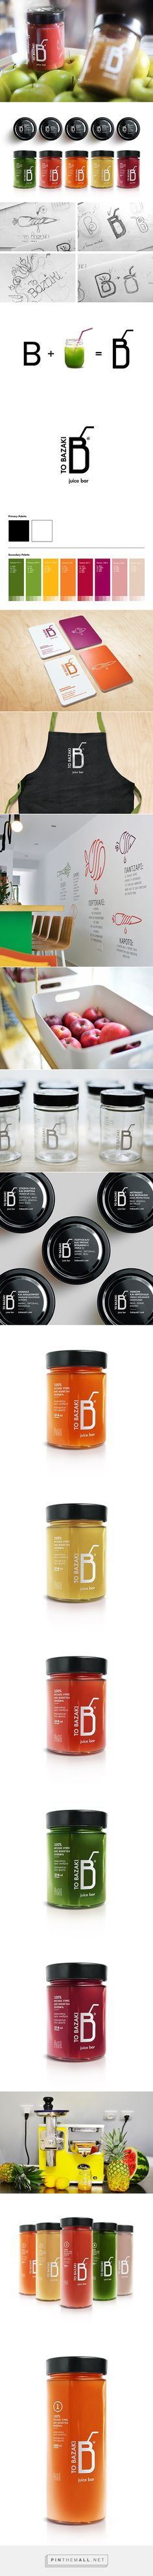 "/// ""TO BAZAKI"" Juice Bar – Design Identity. Designed by George Probonas."